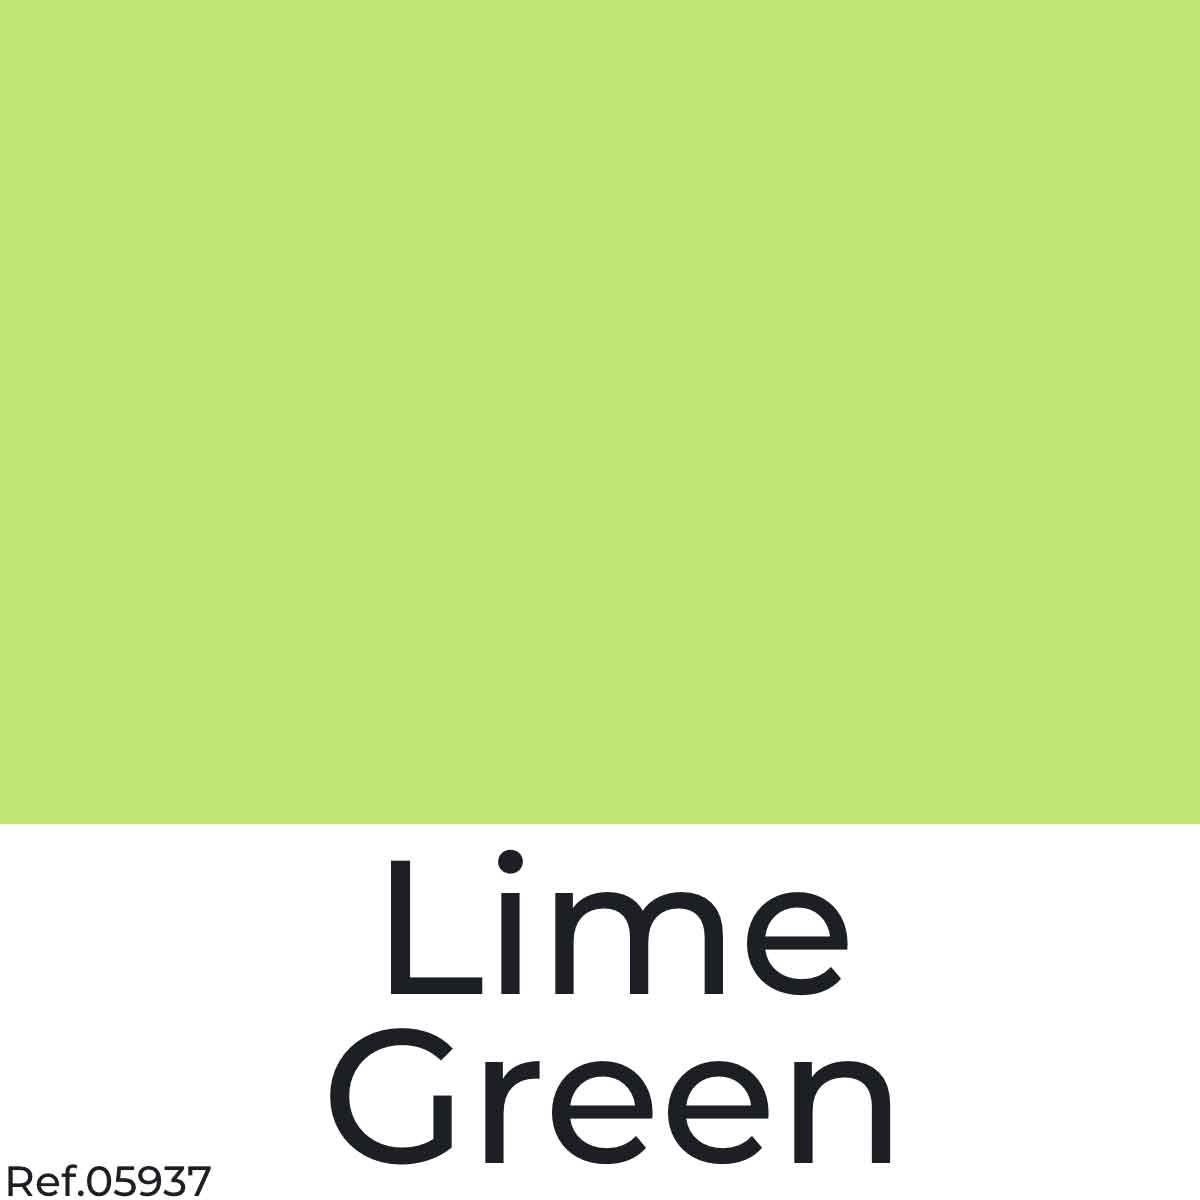 Lime Green Color Poster Paper from najamonline.com Abu Dhabi - UAE